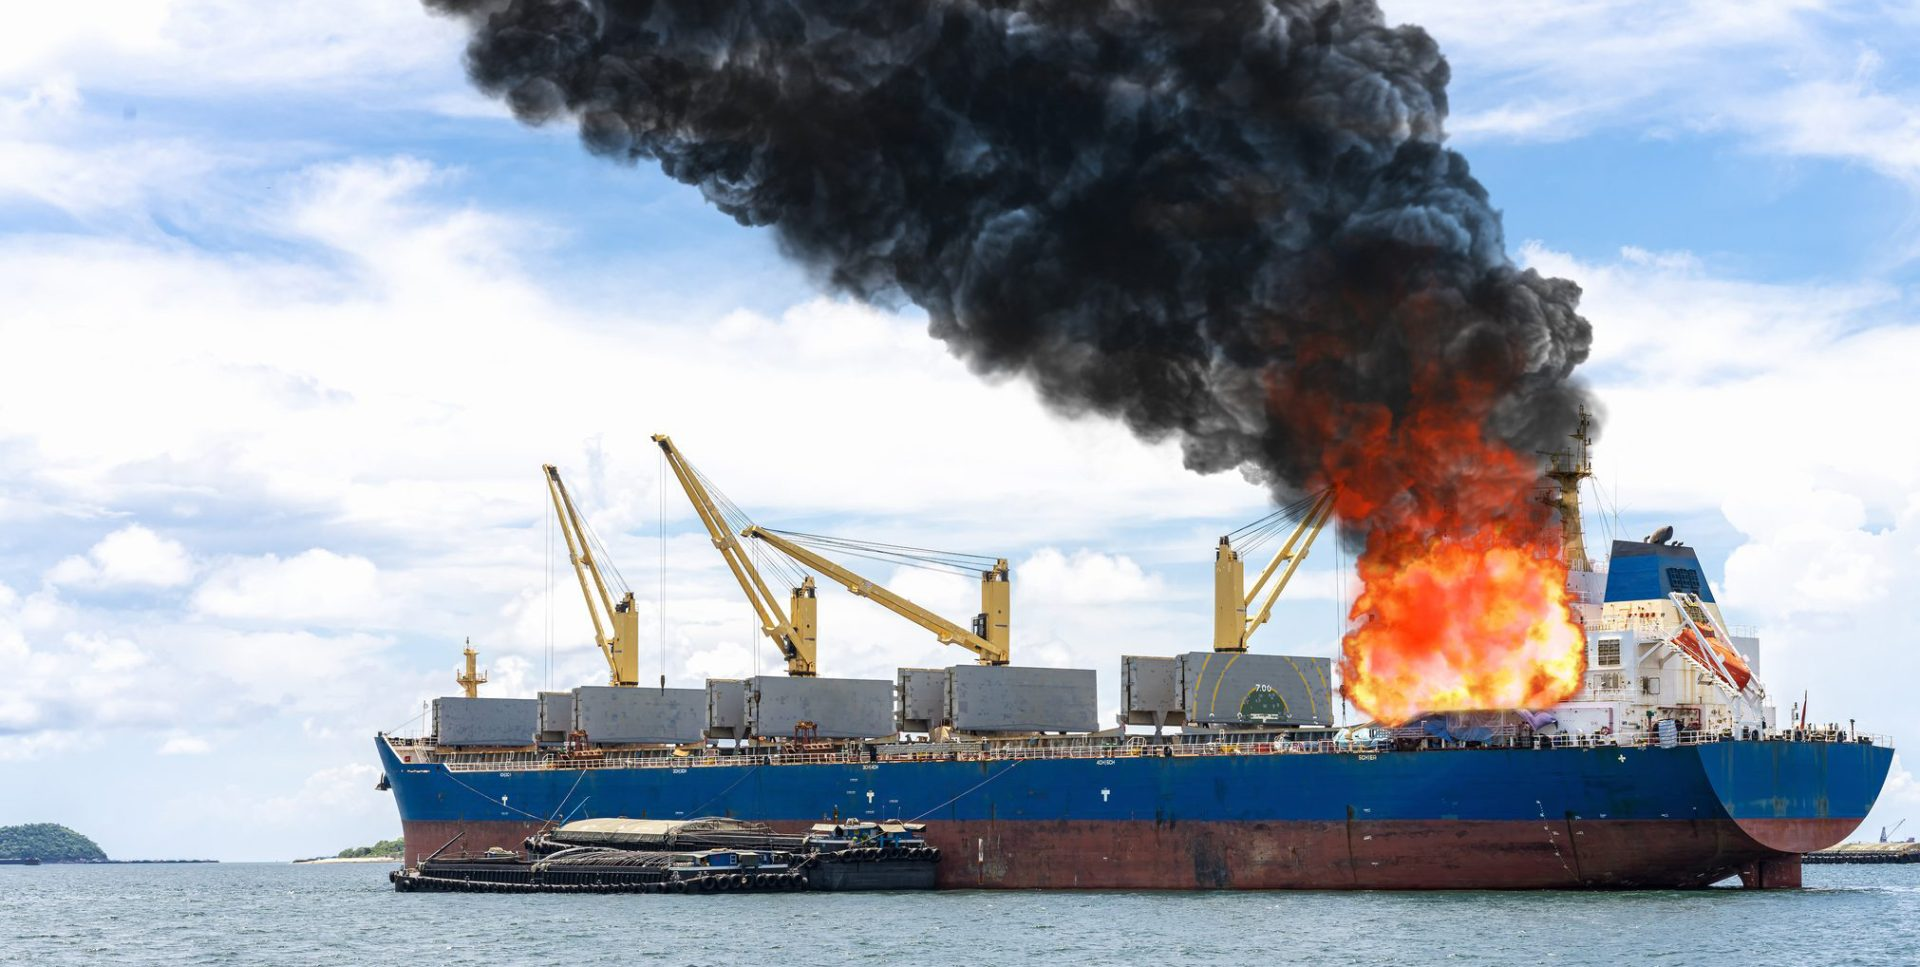 Large general cargo ship for logistic import export of goods, large fire on board billowing